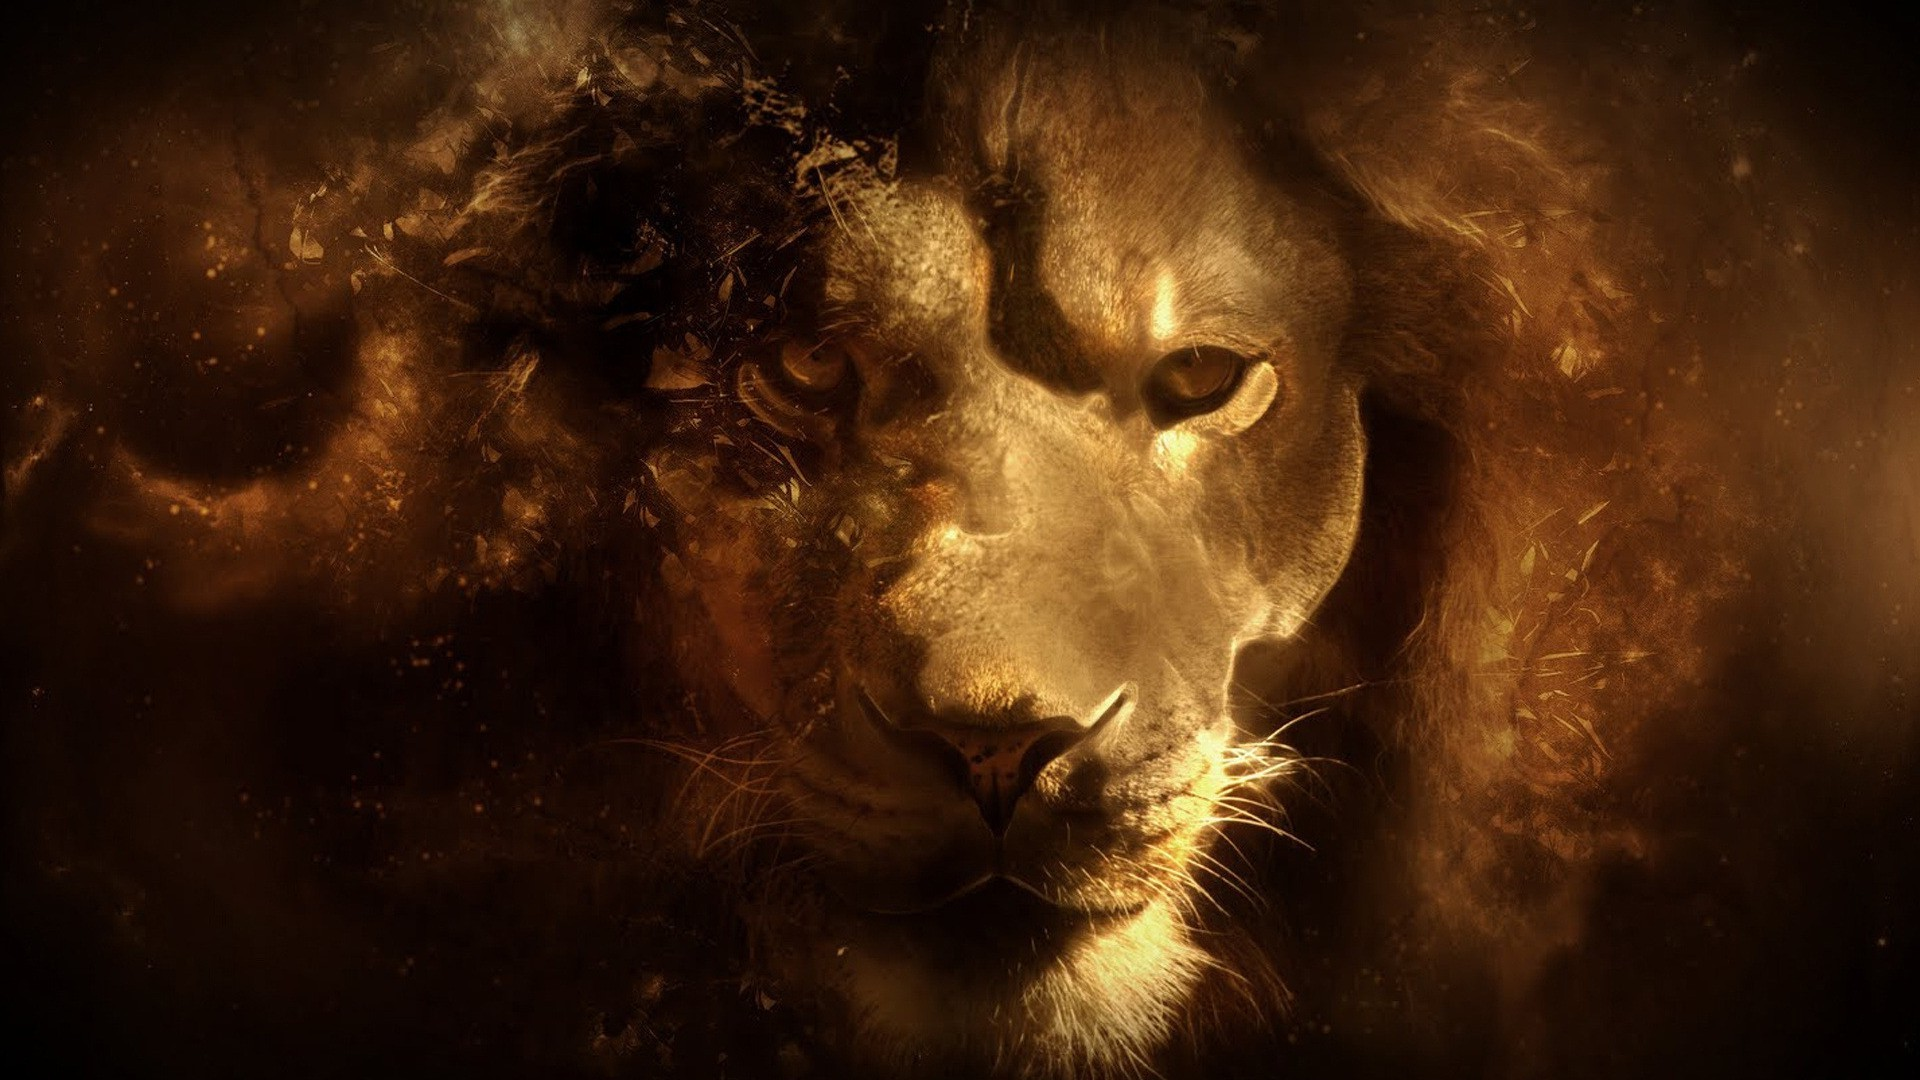 lion, Fantasy Art Wallpapers HD / Desktop and Mobile Backgrounds